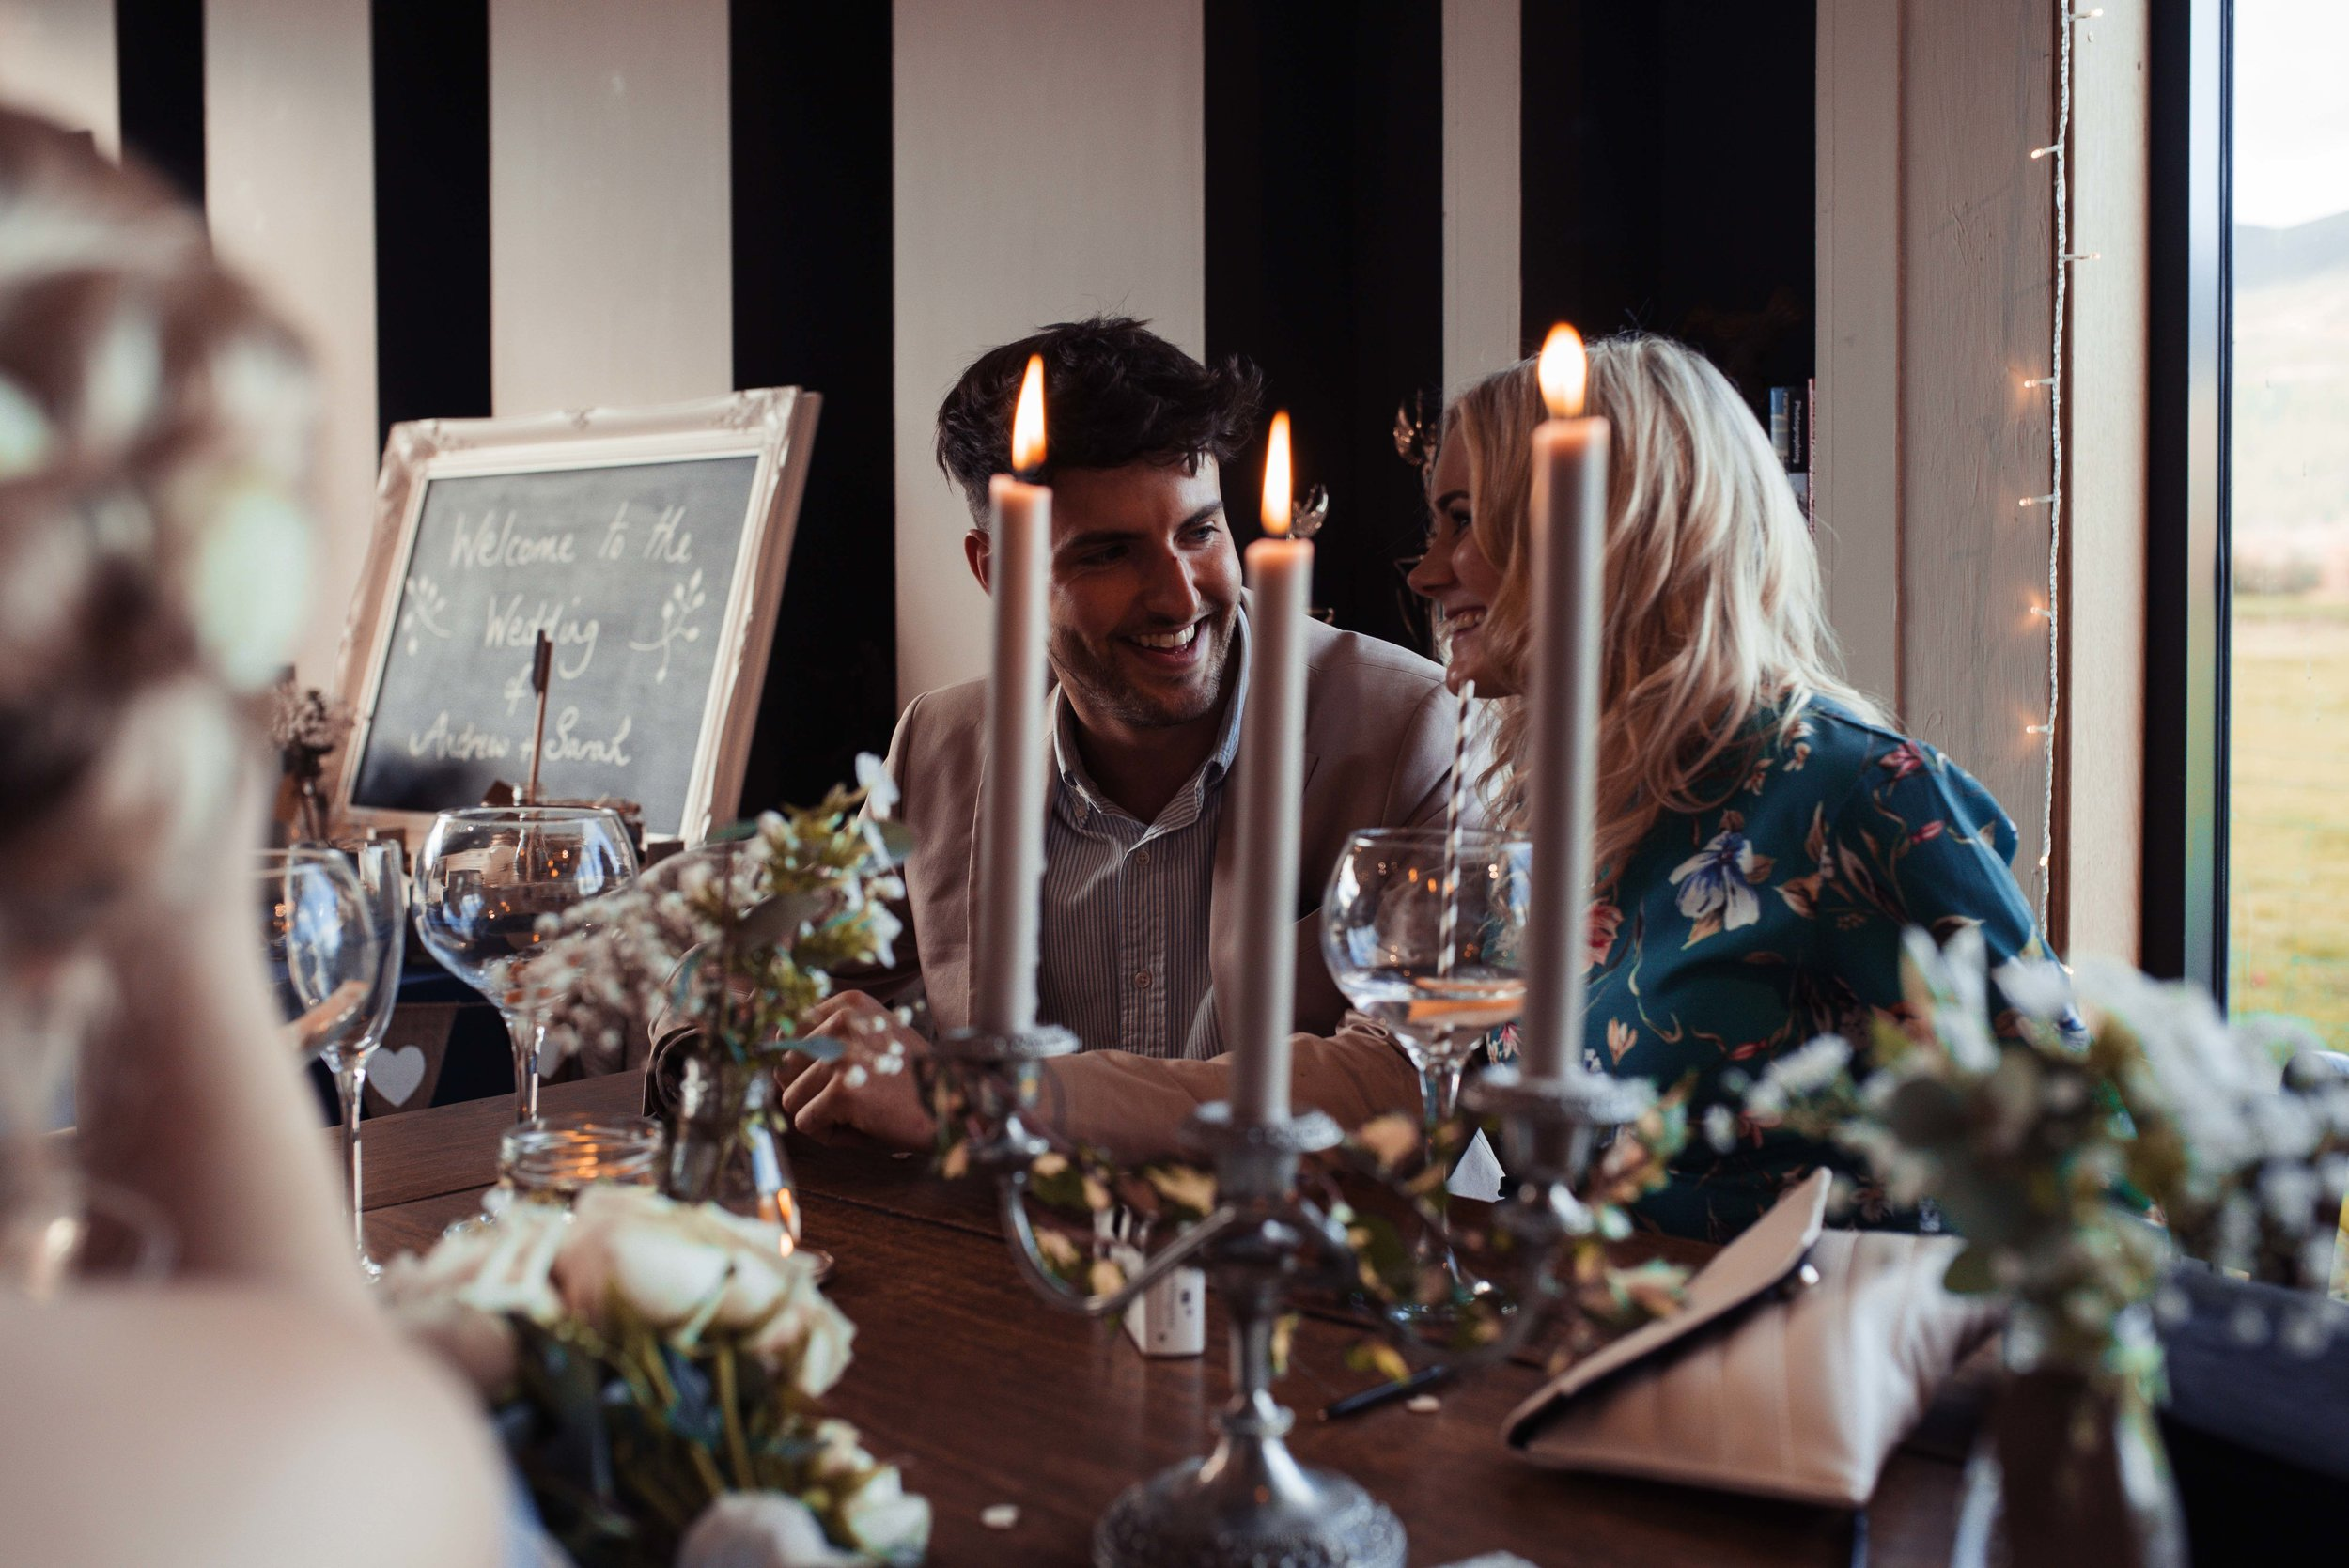 A wedding guest couple sit and have a drink together on a table lit with candles